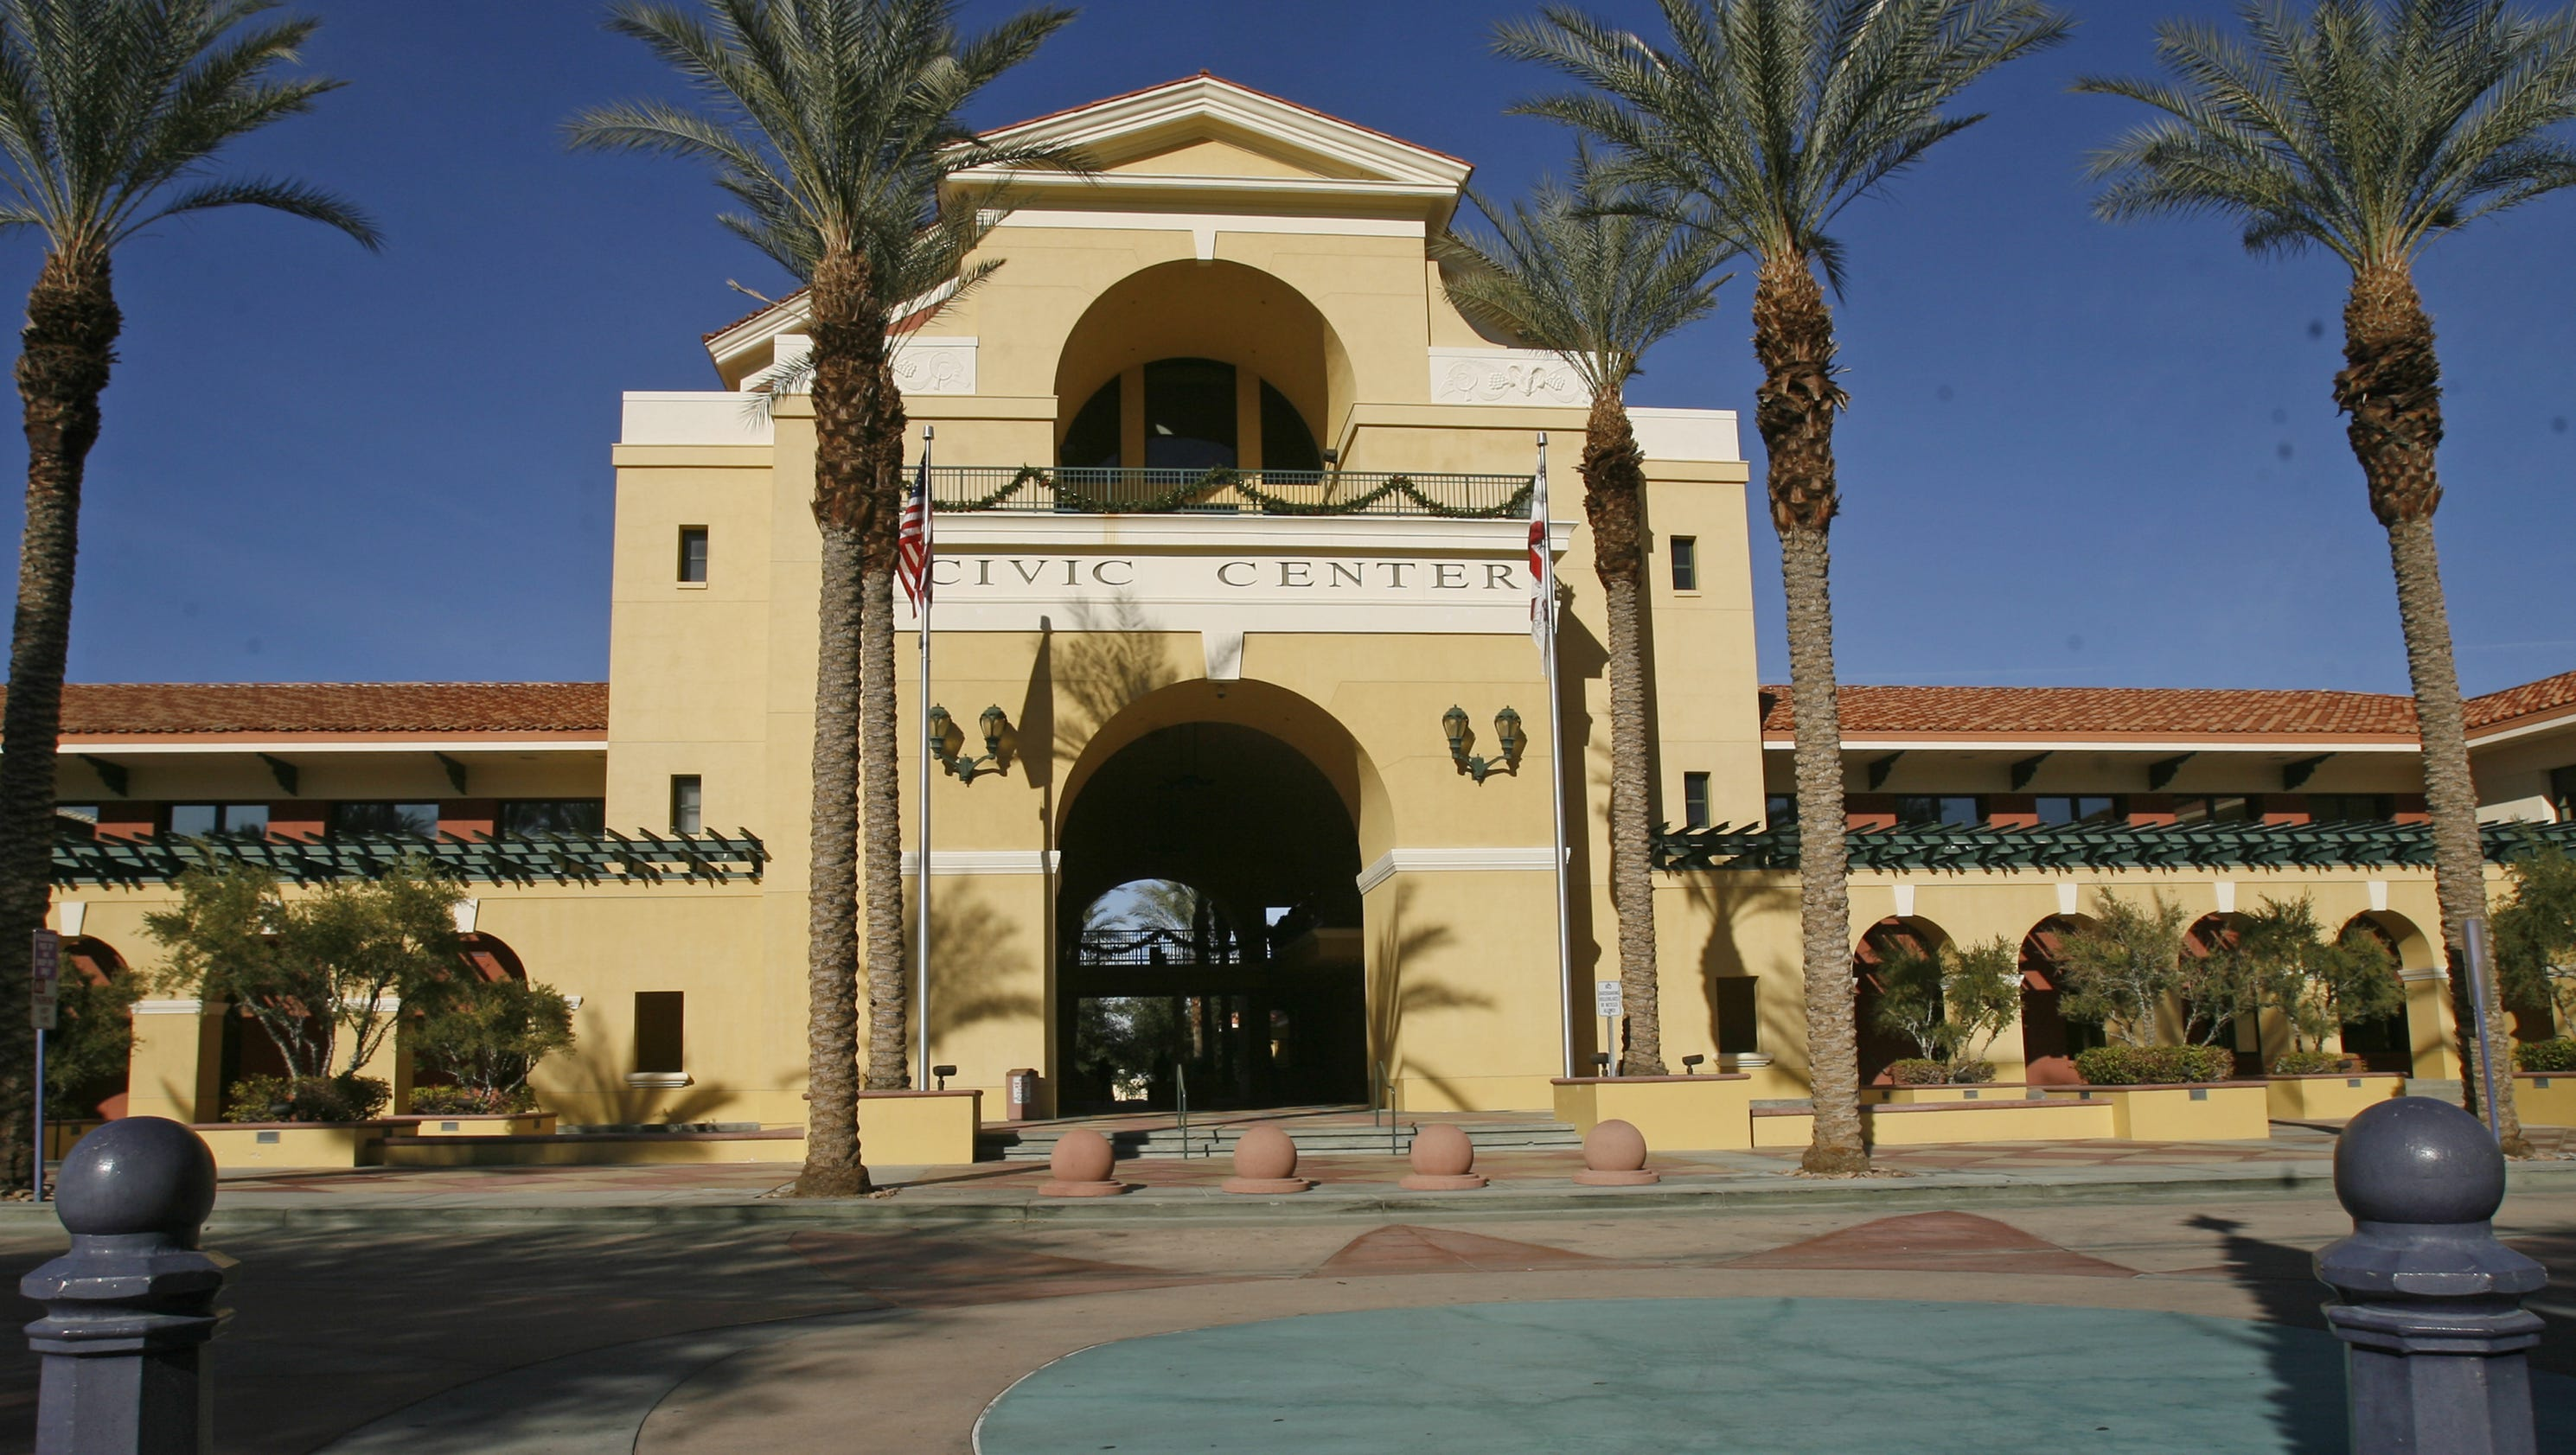 cathedral city 4 reviews of worldmark cathedral city as a worldmark owner, i'm trying to make my way through all 221+ resorts idk if i'll ever keep pace w as quickly as they keep adding more properties.